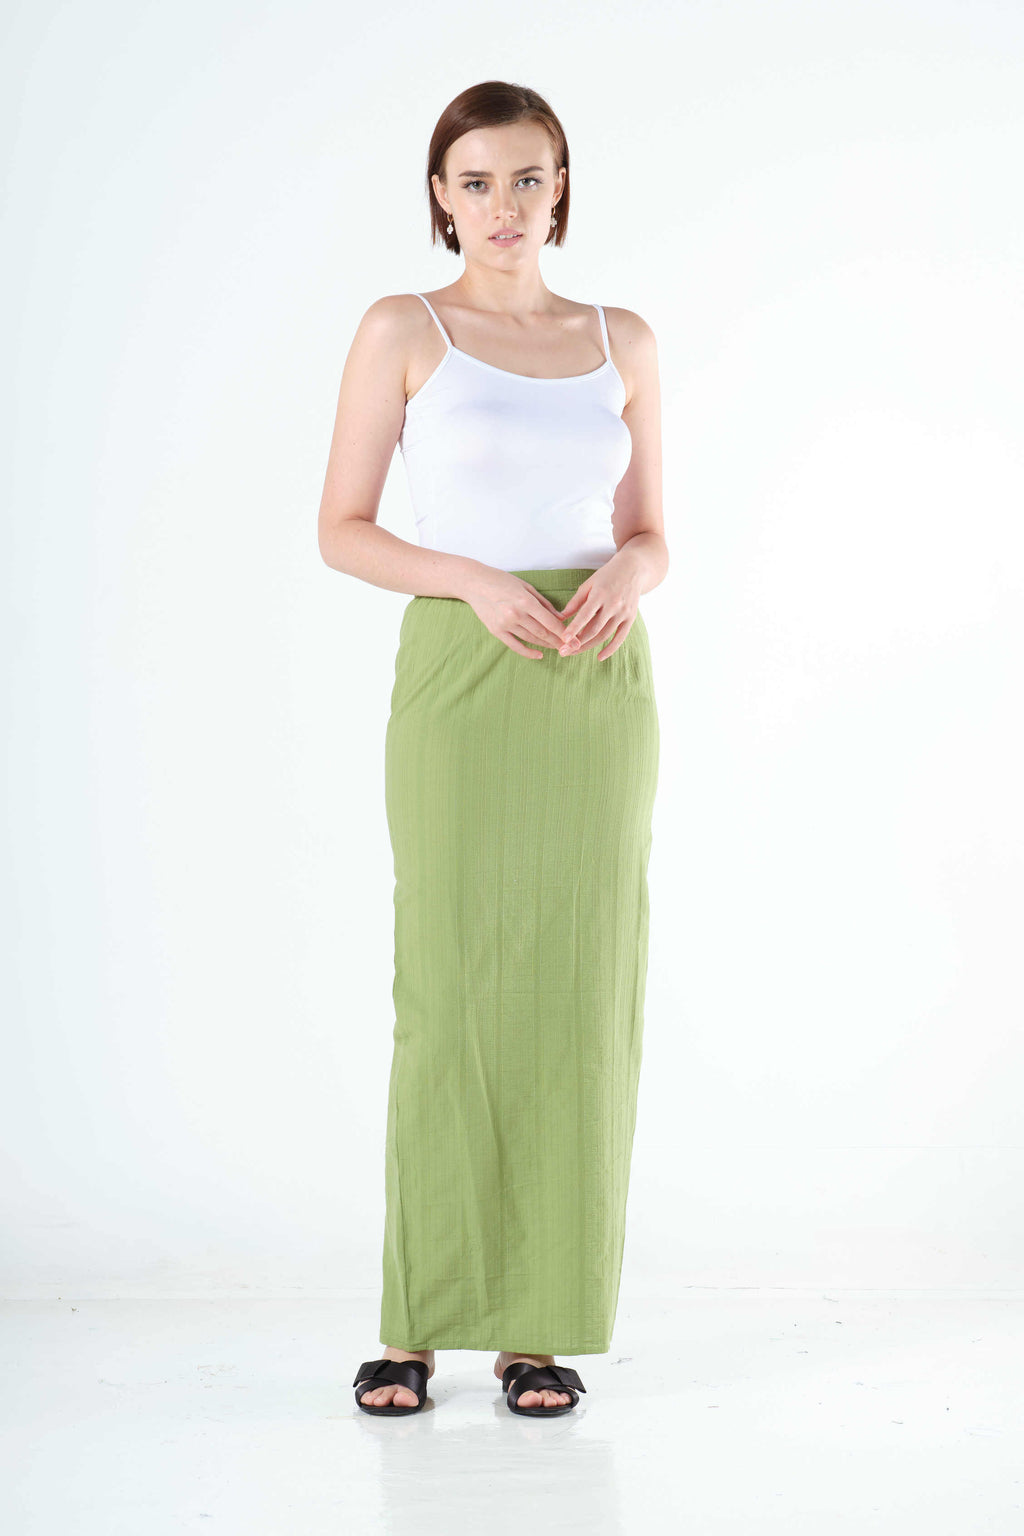 Syairah Sarung in Spring Green